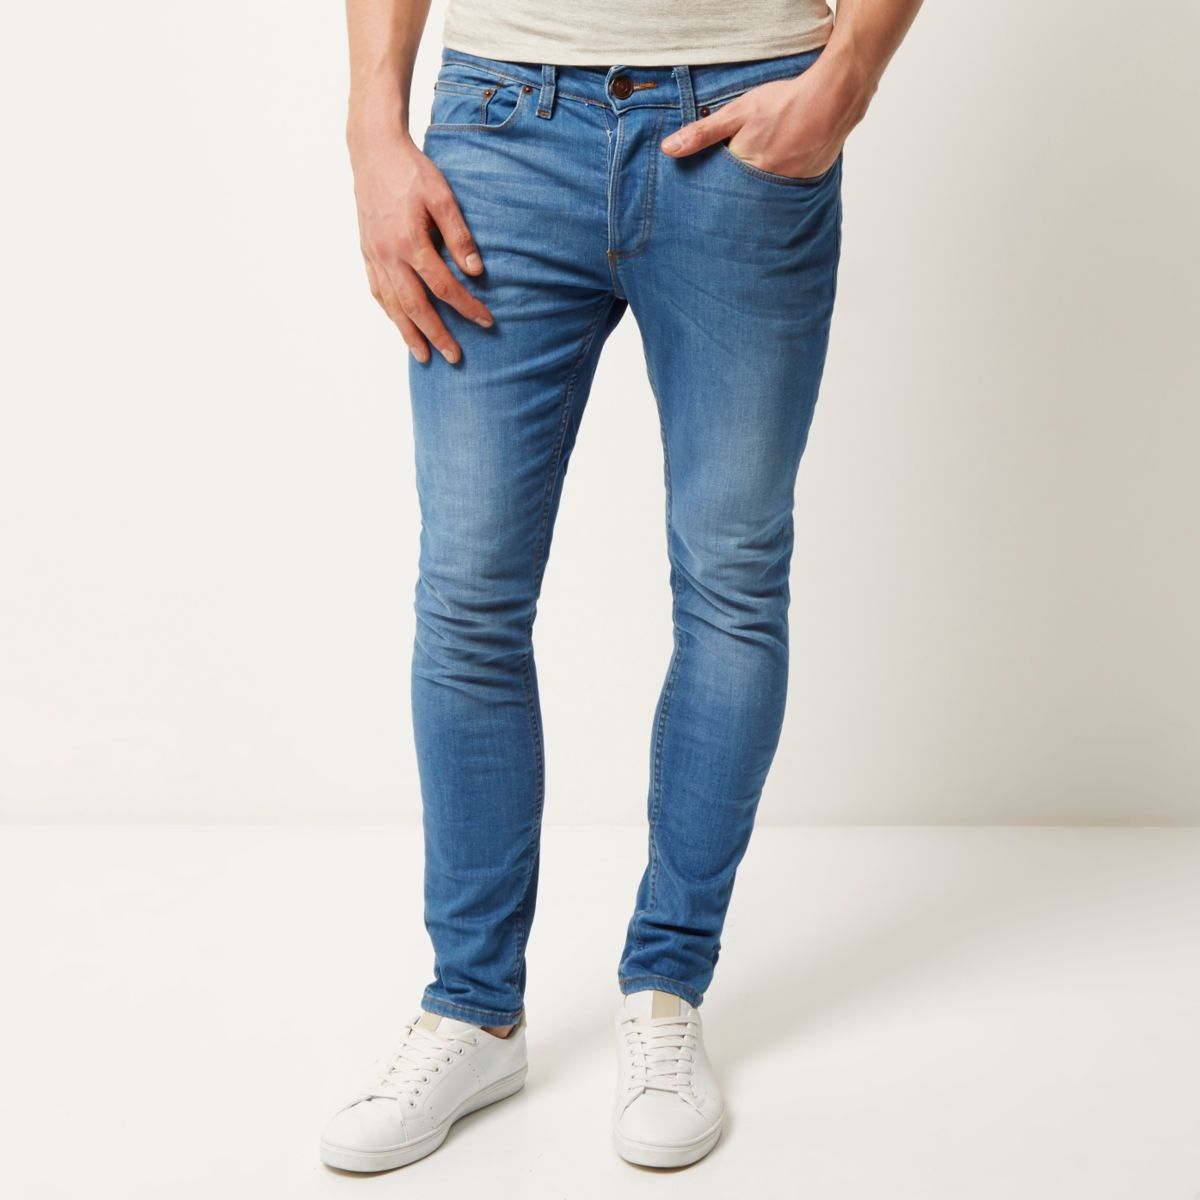 With a range of different denim washes to choose from, from very light to deeply dark and everything in between, you can stock up on all the men's skinny jeans you need. If skinny jeans aren't your thing, you should check out PacSun's collection of men's jeans including slim fit jeans and straight leg jeans.